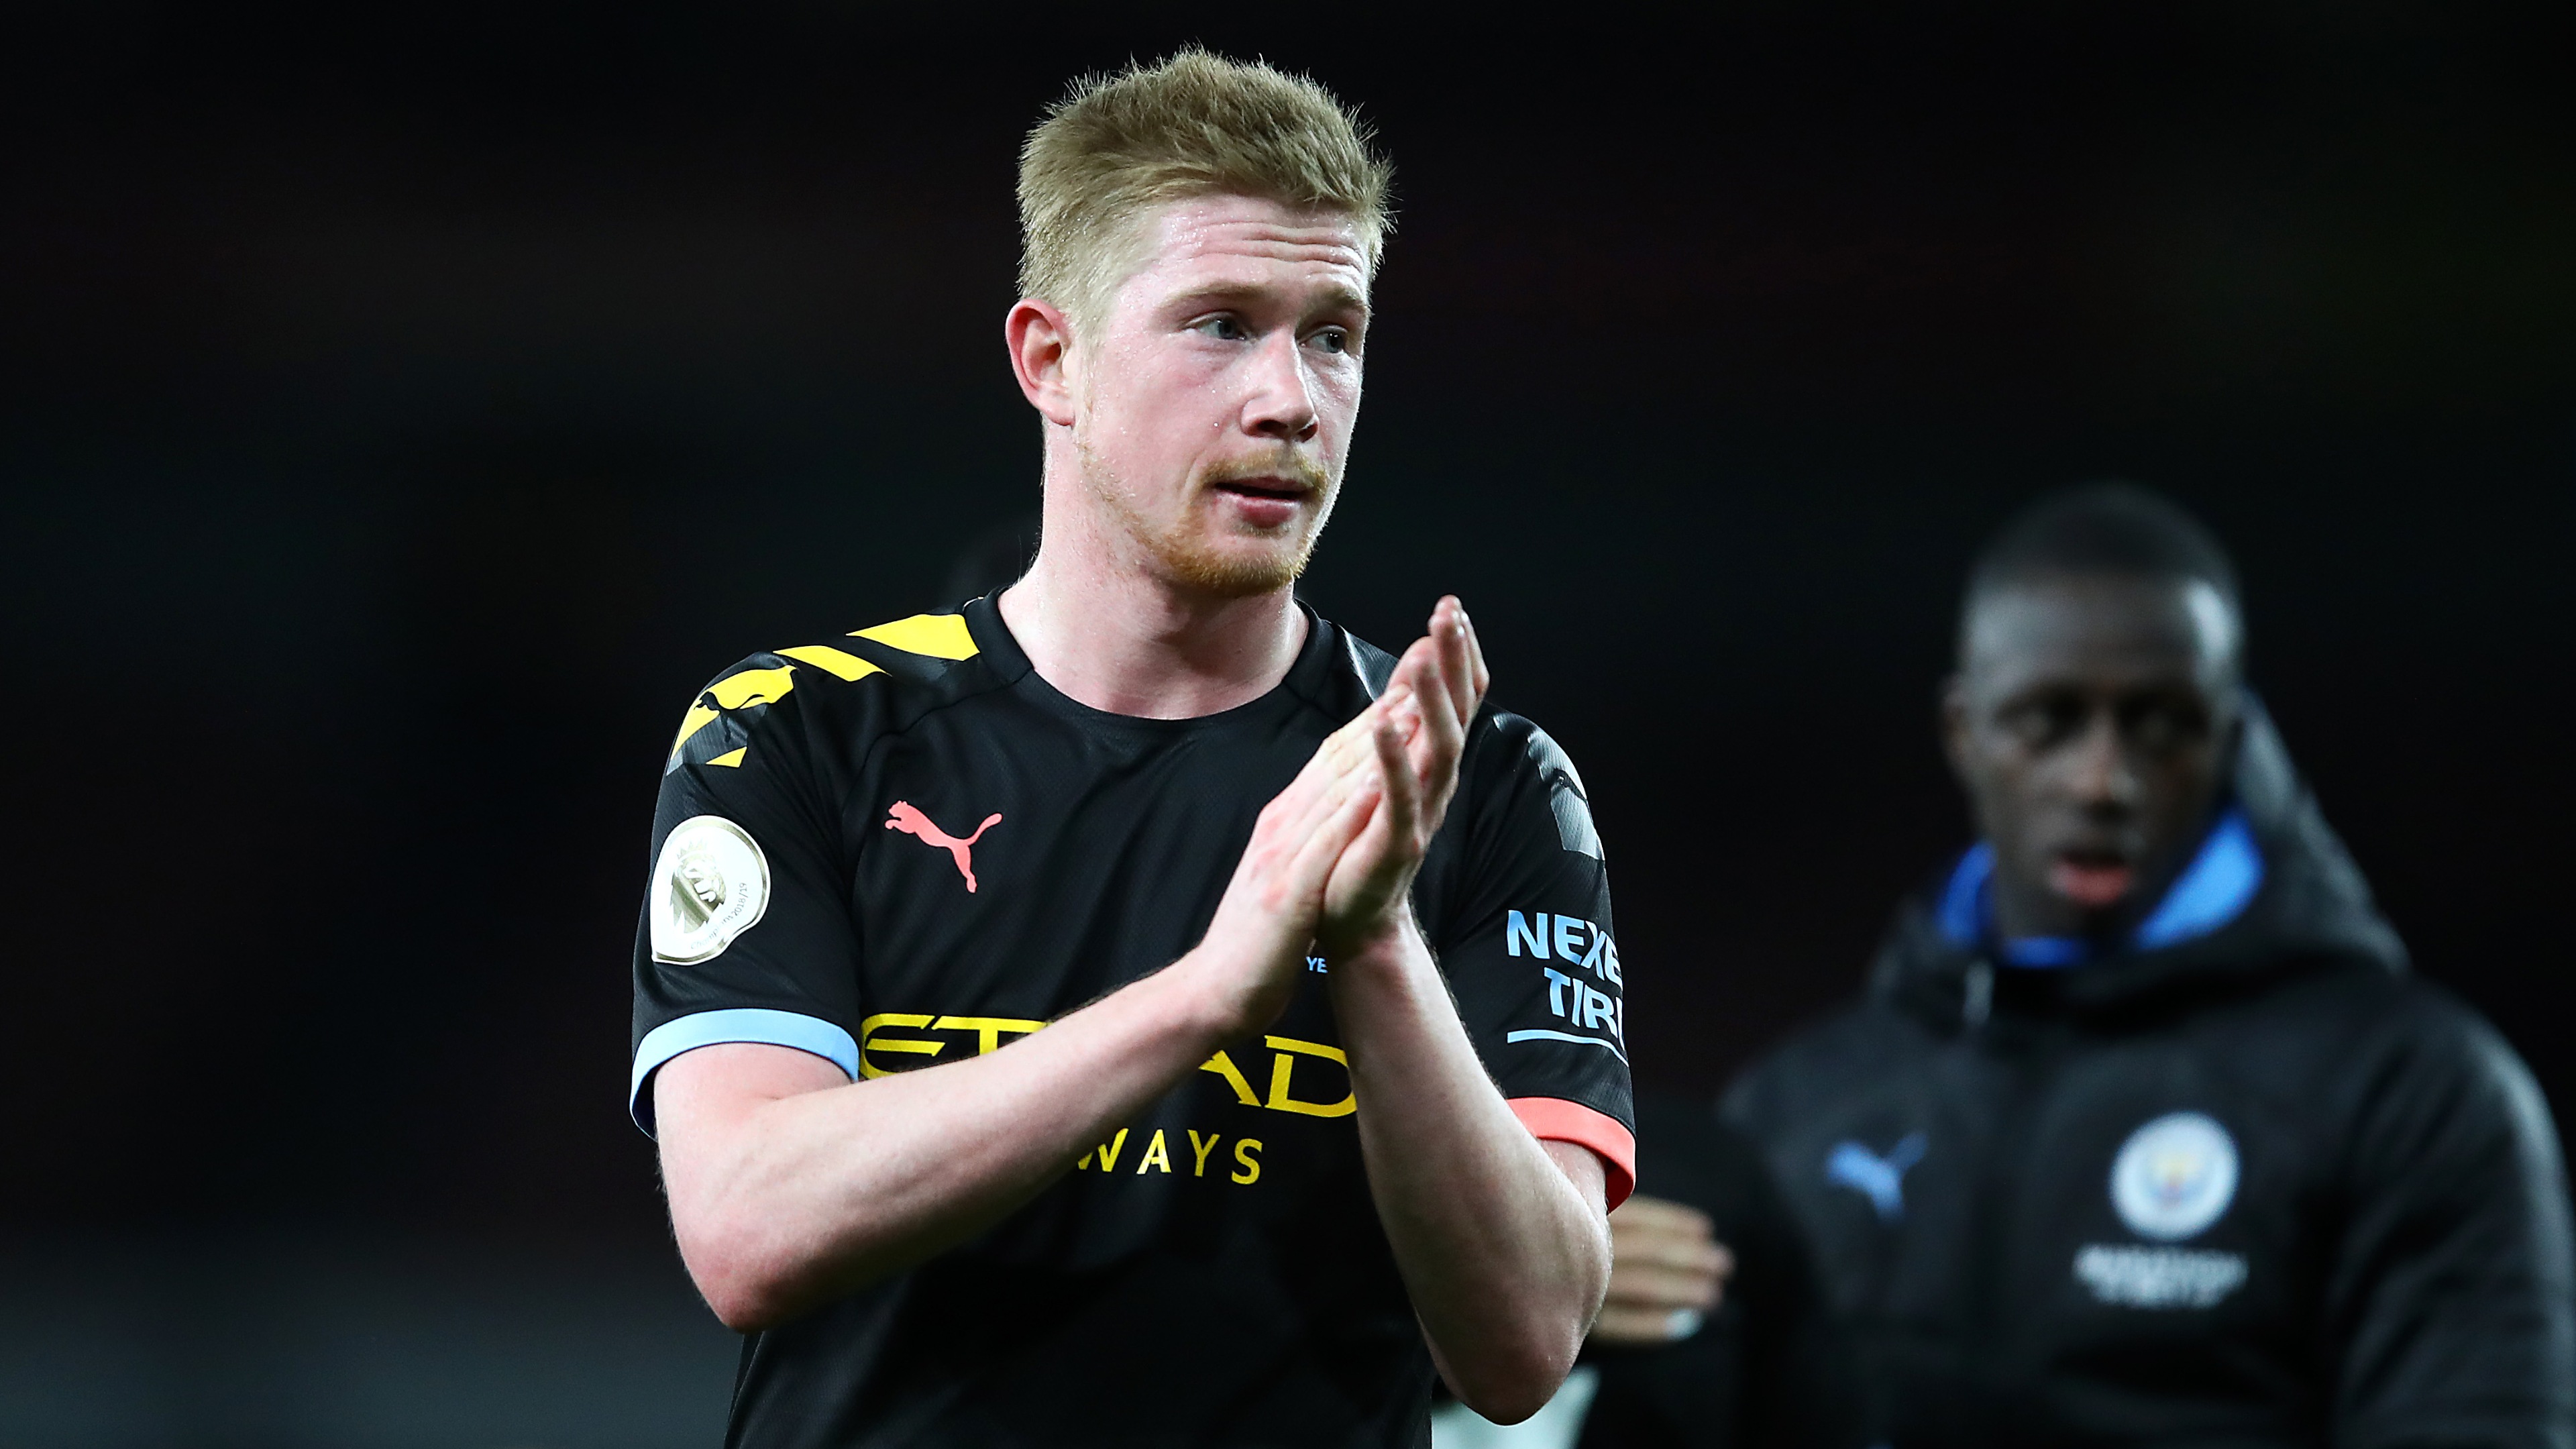 Kevin De Bruyne may miss Belgium's opening game of the Nations League on Saturday with his wife set to give birth to their third child, team officials said on Wednesday. De Bruyne, known as 'the Belgian Pele' in his homeland, did not join up with the rest of the squad when they assembled in Belgium […]